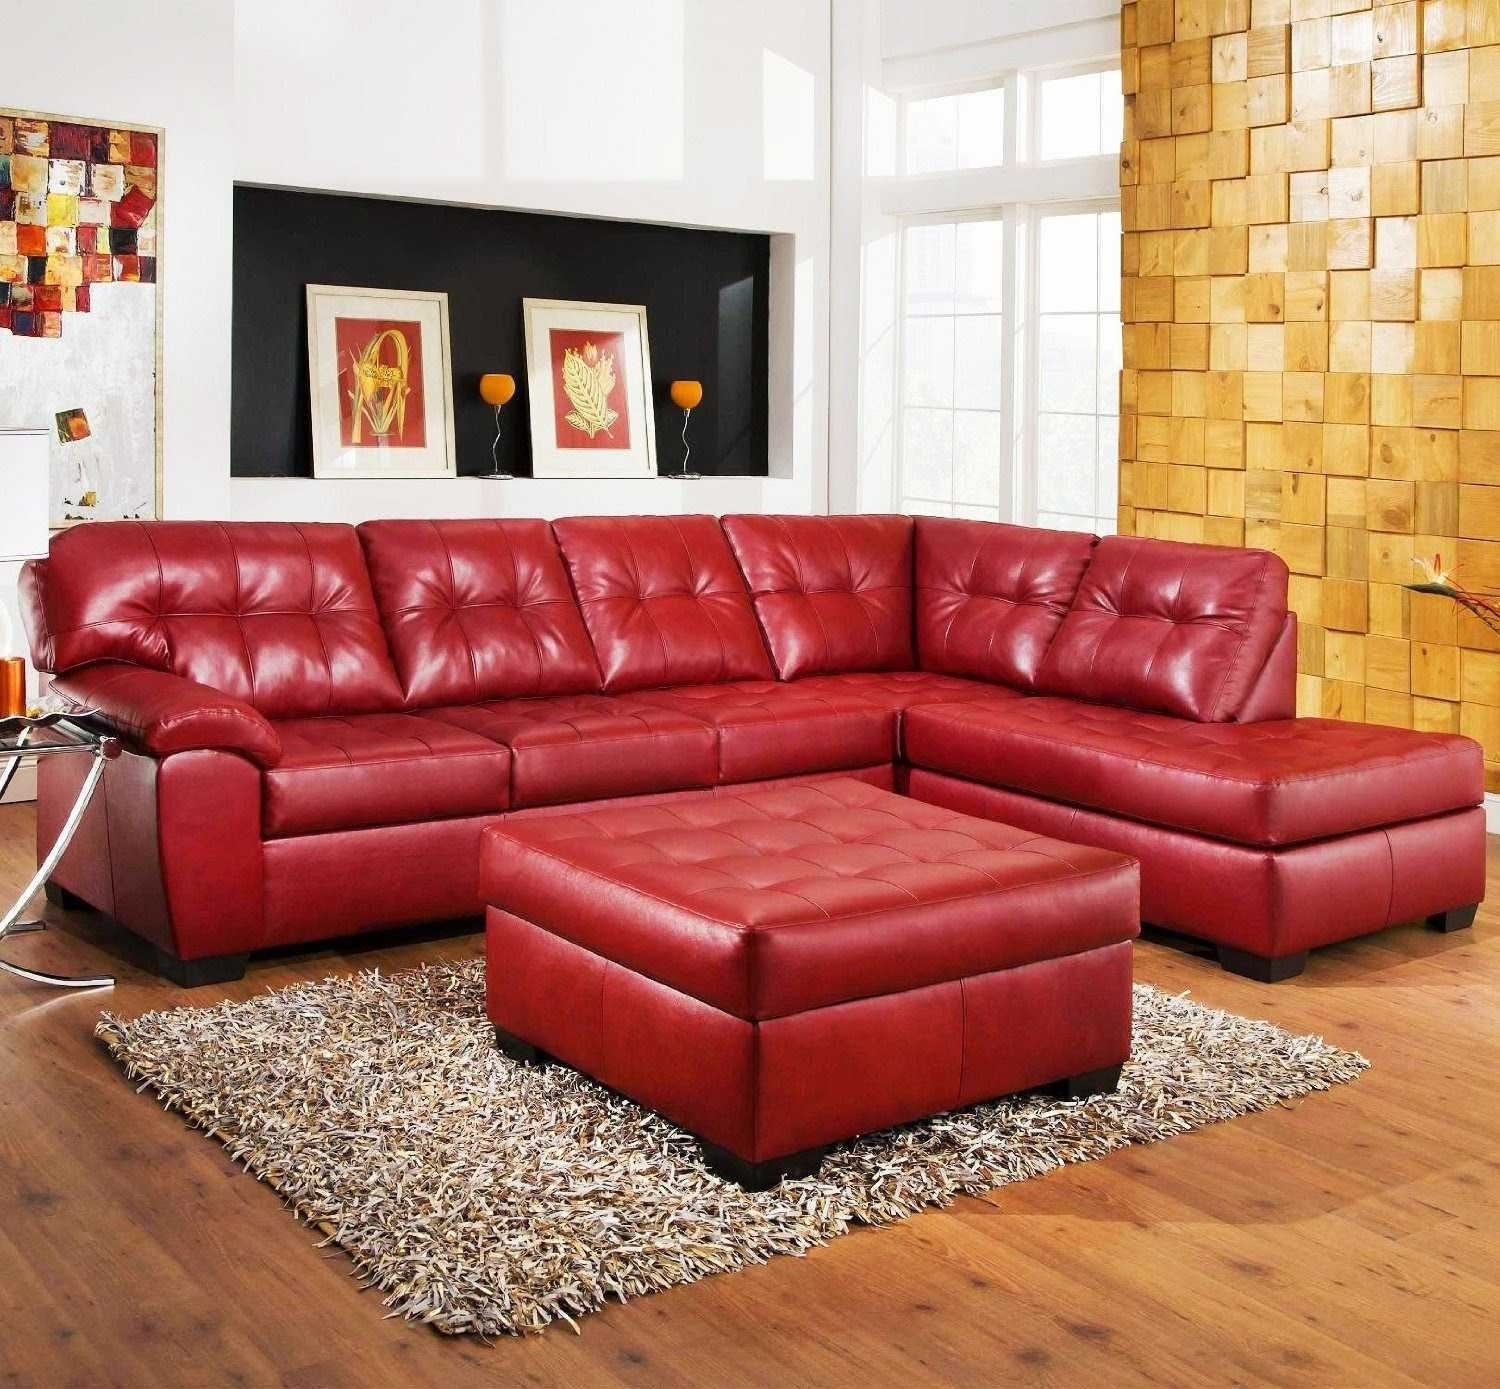 The Best Sectional Sofas Rooms Go And Ideas Pics Of To Trend Popular within Rooms to Go Sectional Sofas (Image 8 of 10)